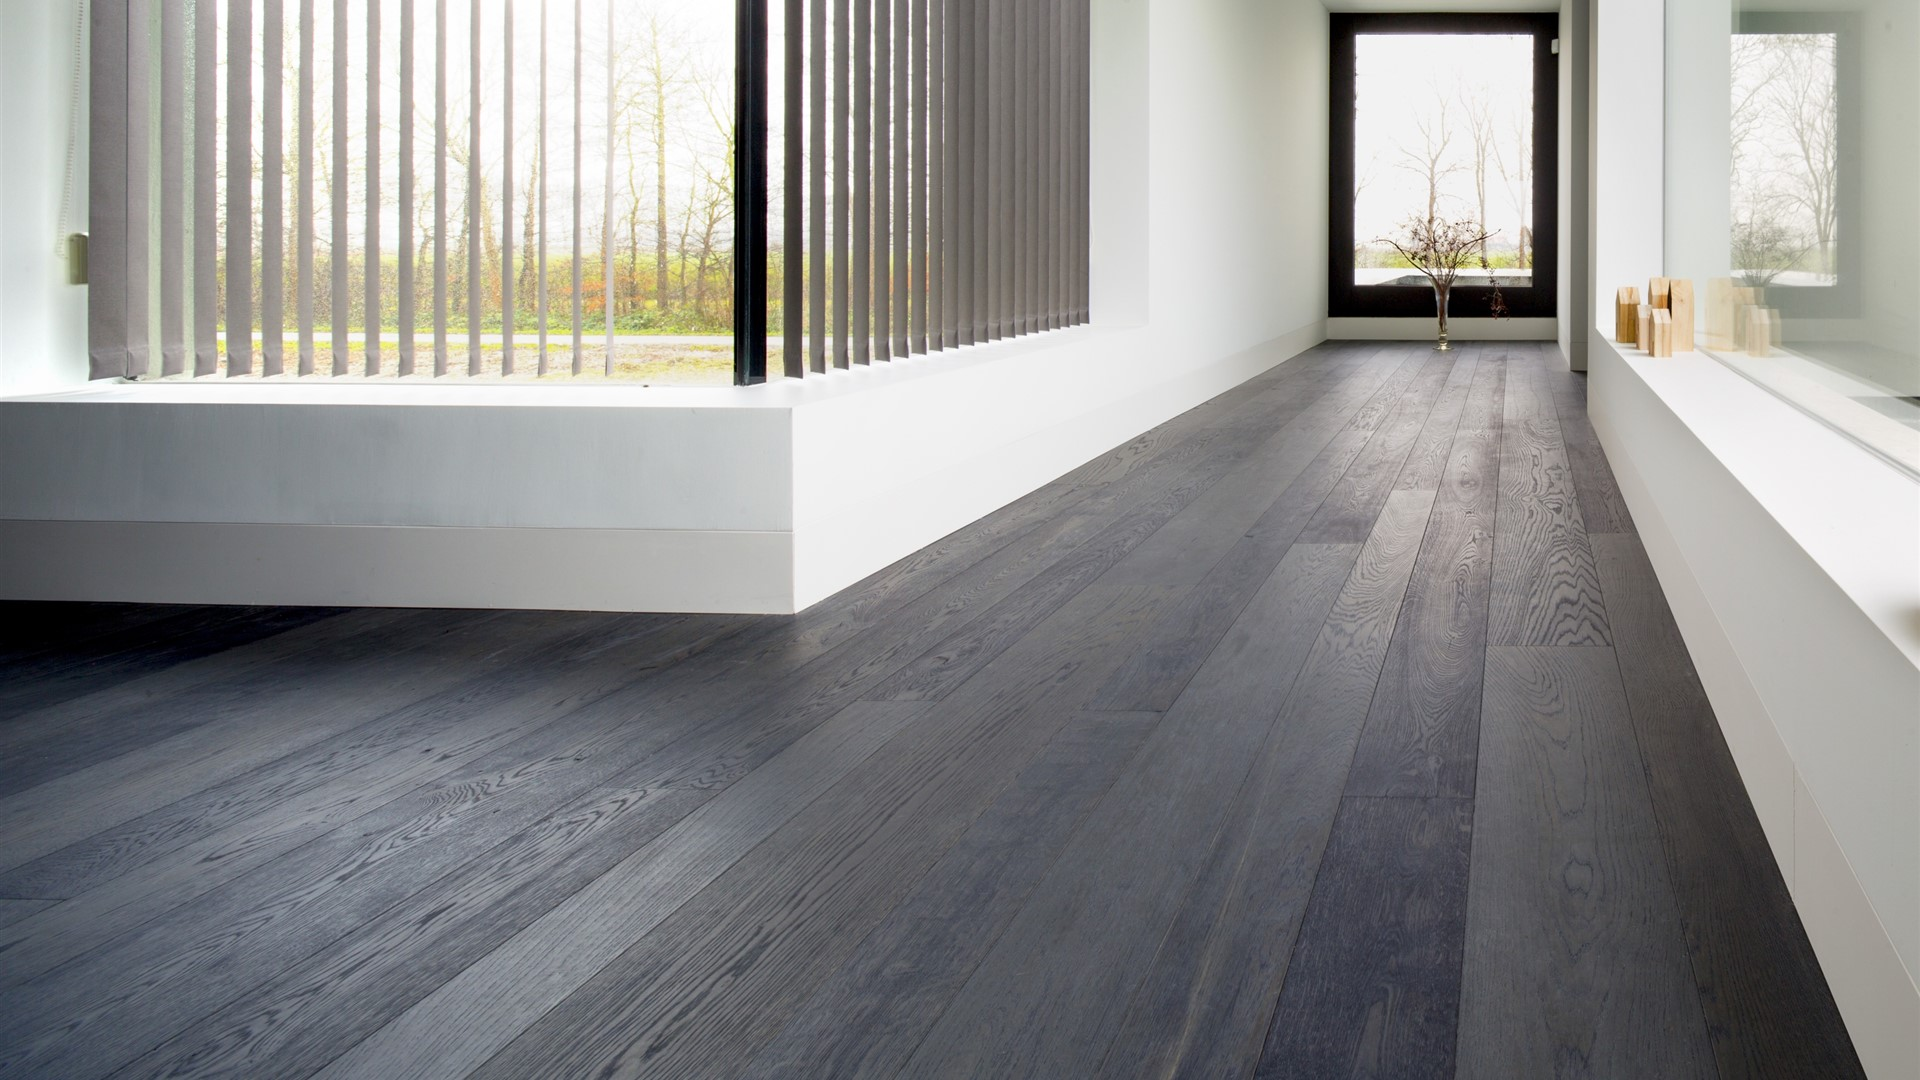 Private Residence Emmeloord with Hakwood Shadow flooring